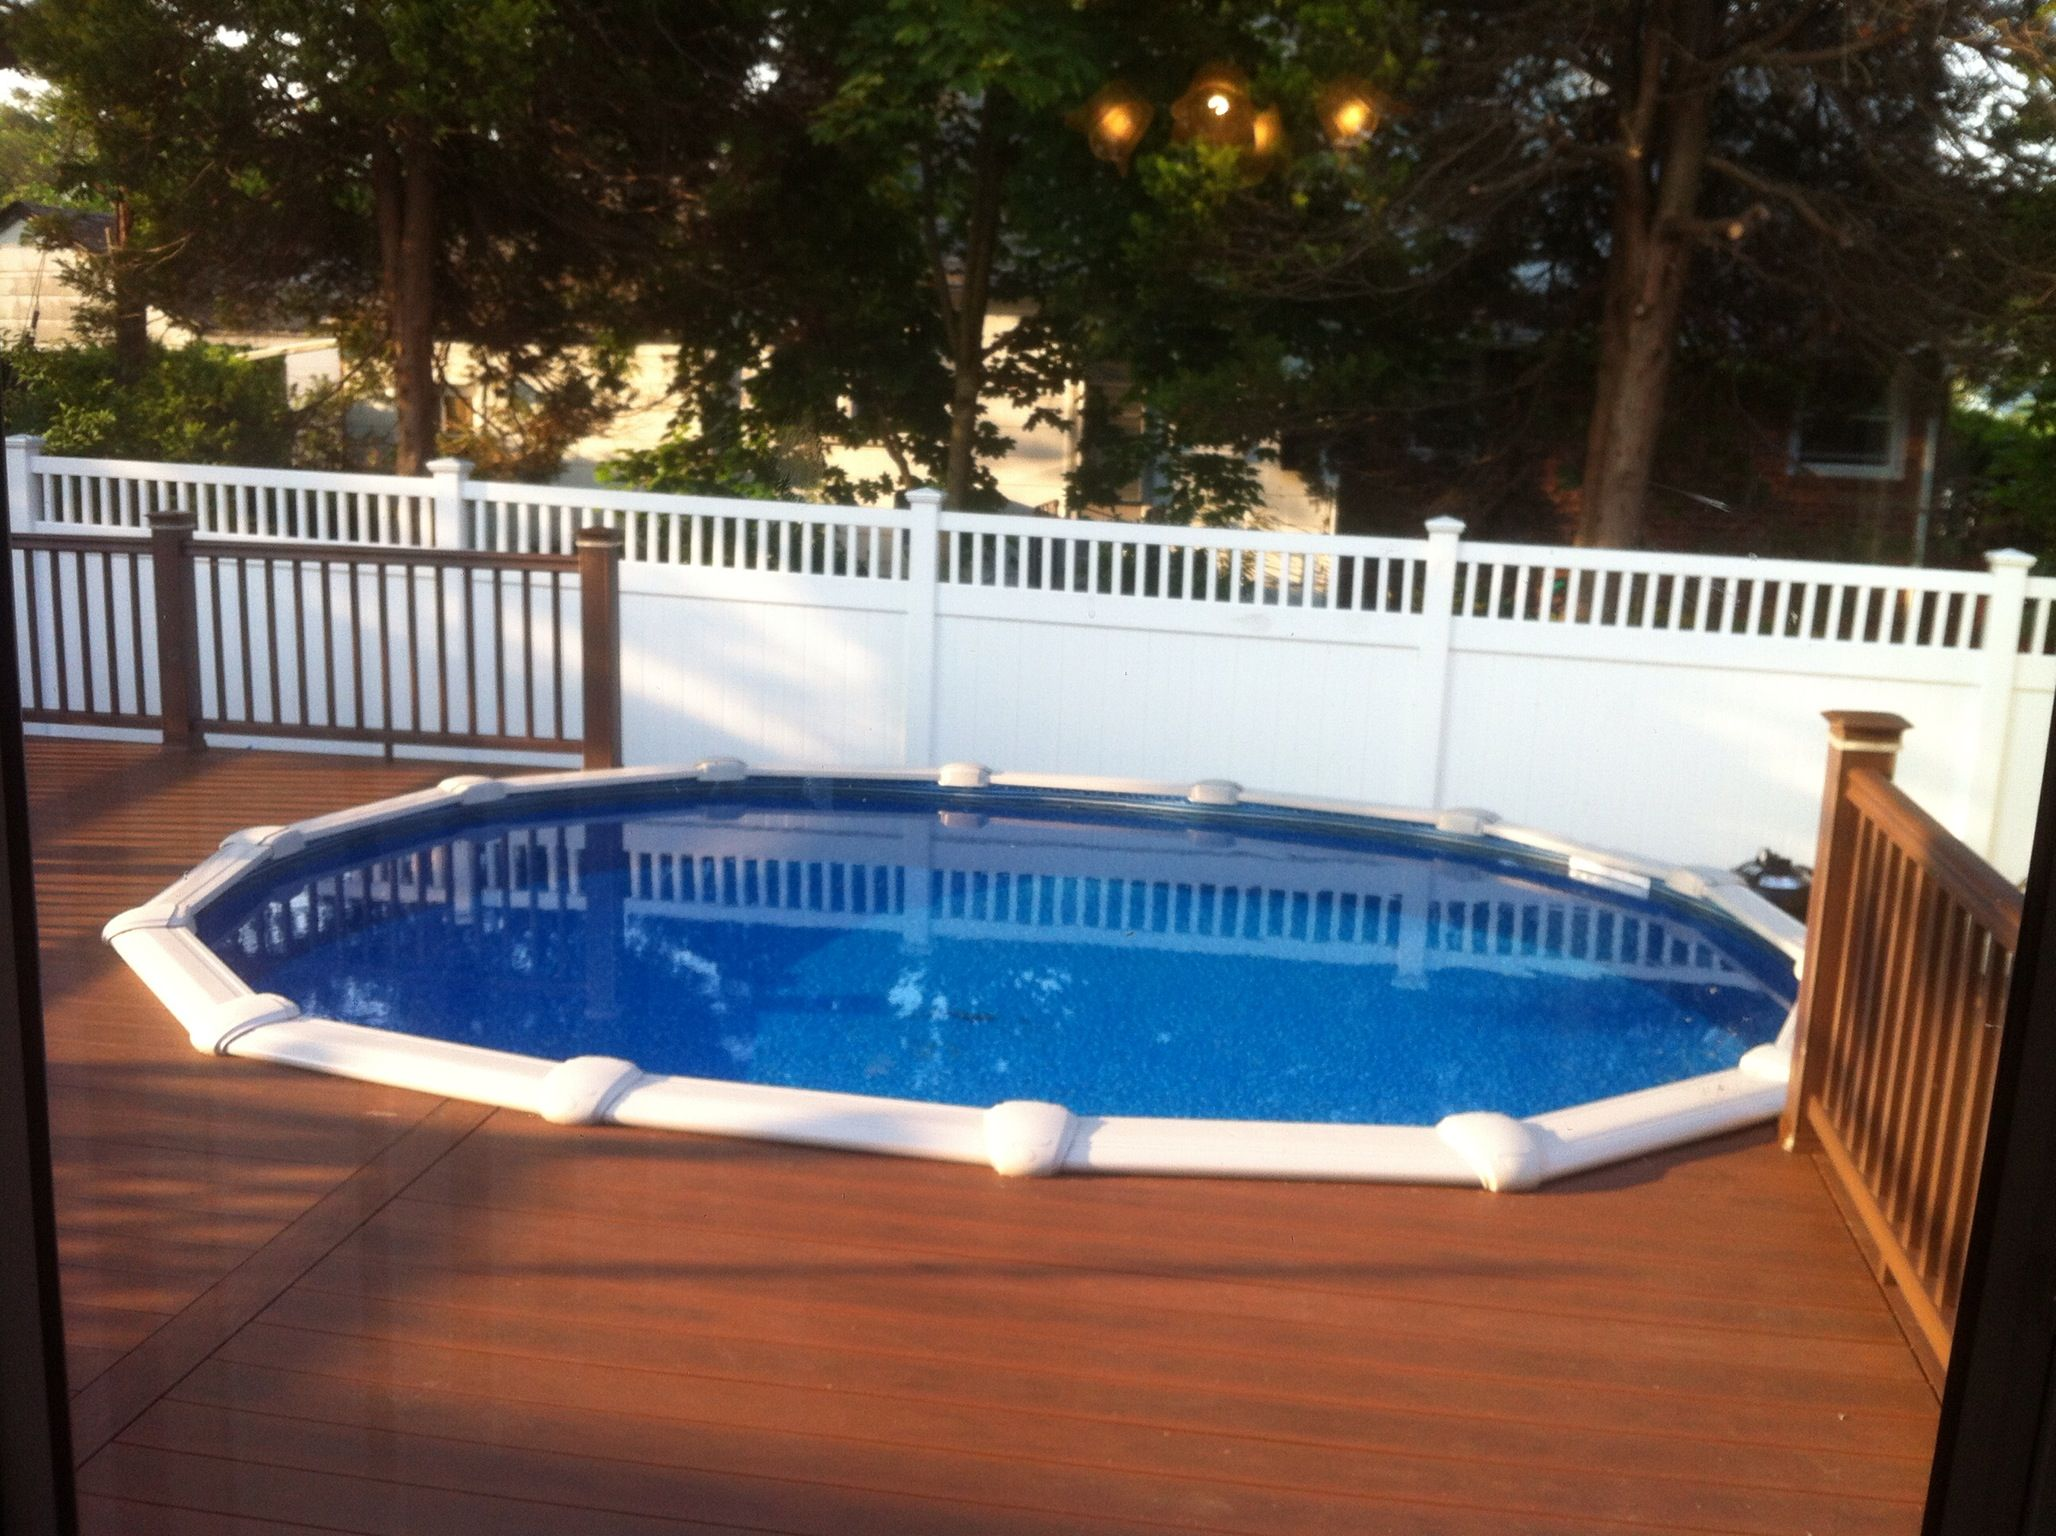 12x17 Sharkline Navigator Aboveground Pool With Deck Brothers 3 Pools Aboveground Semi